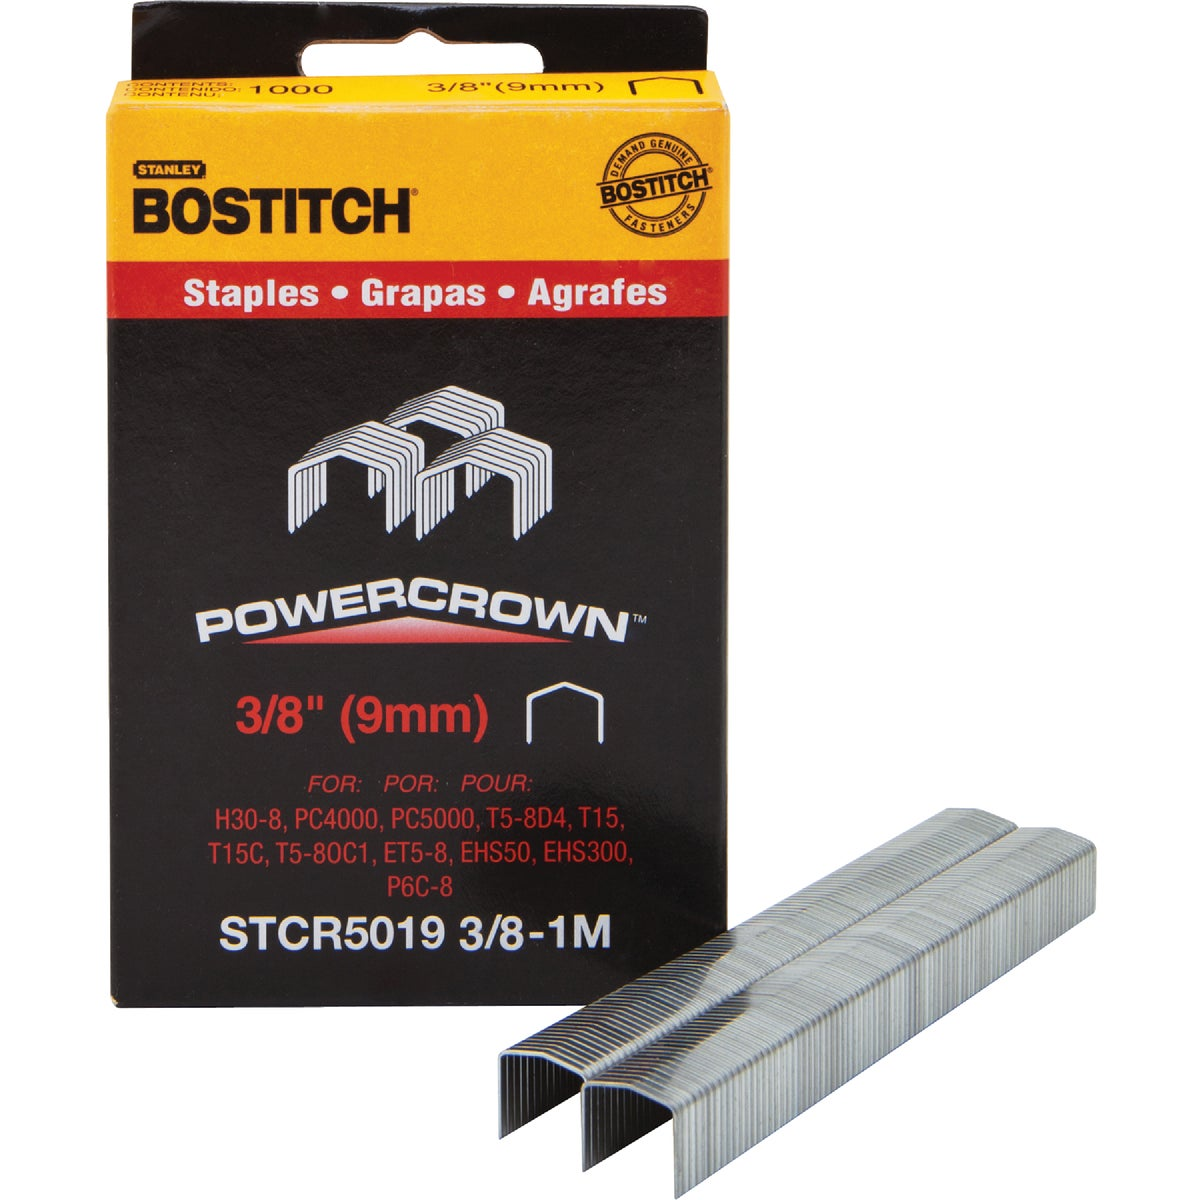 "3/8"" STAPLE - STCR50193/8-1M by Stanley Bostitch"